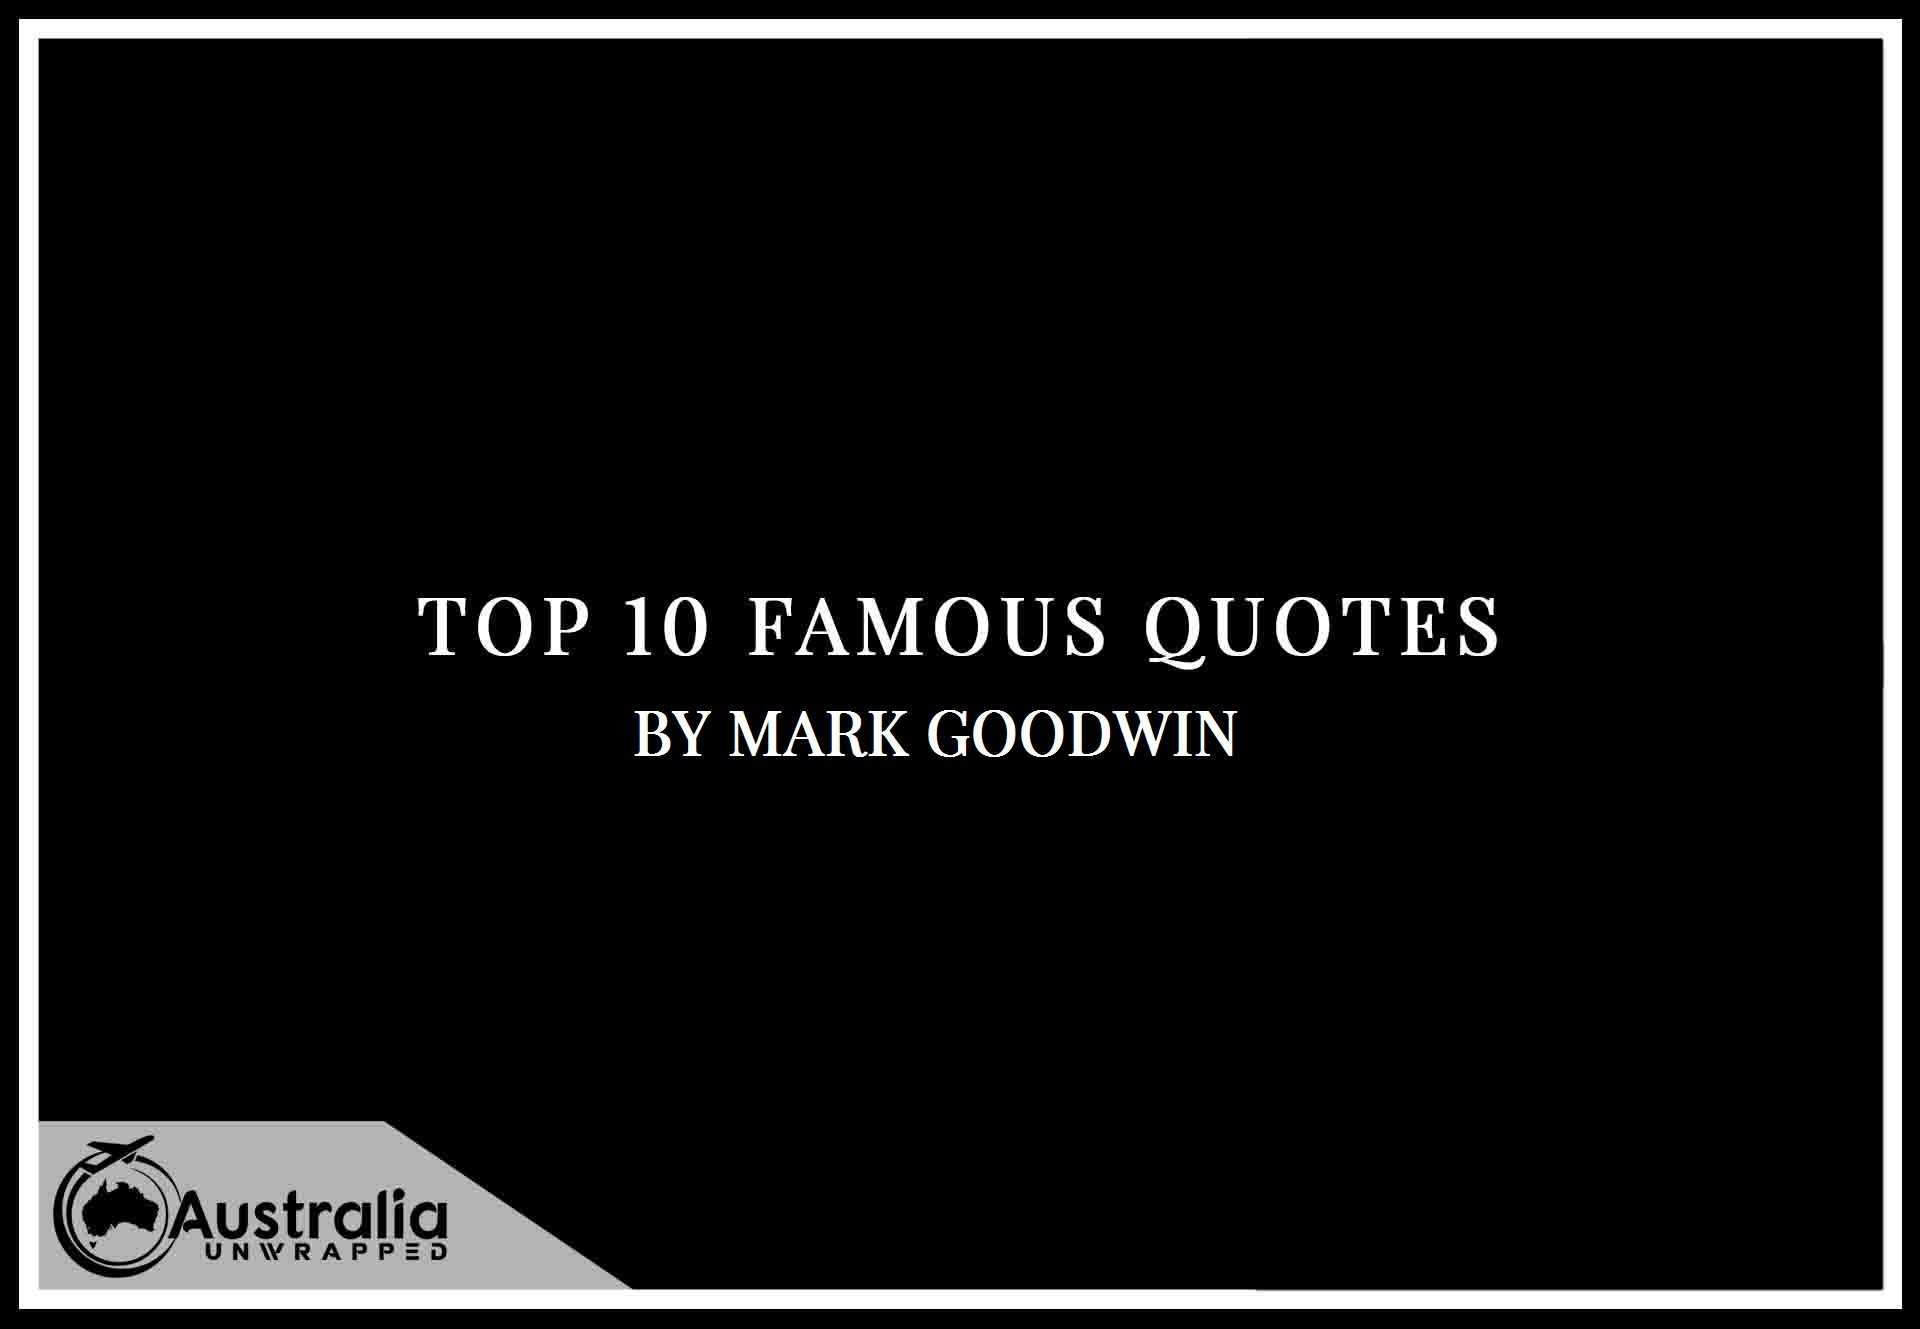 Mark Goodwin's Top 10 Popular and Famous Quotes